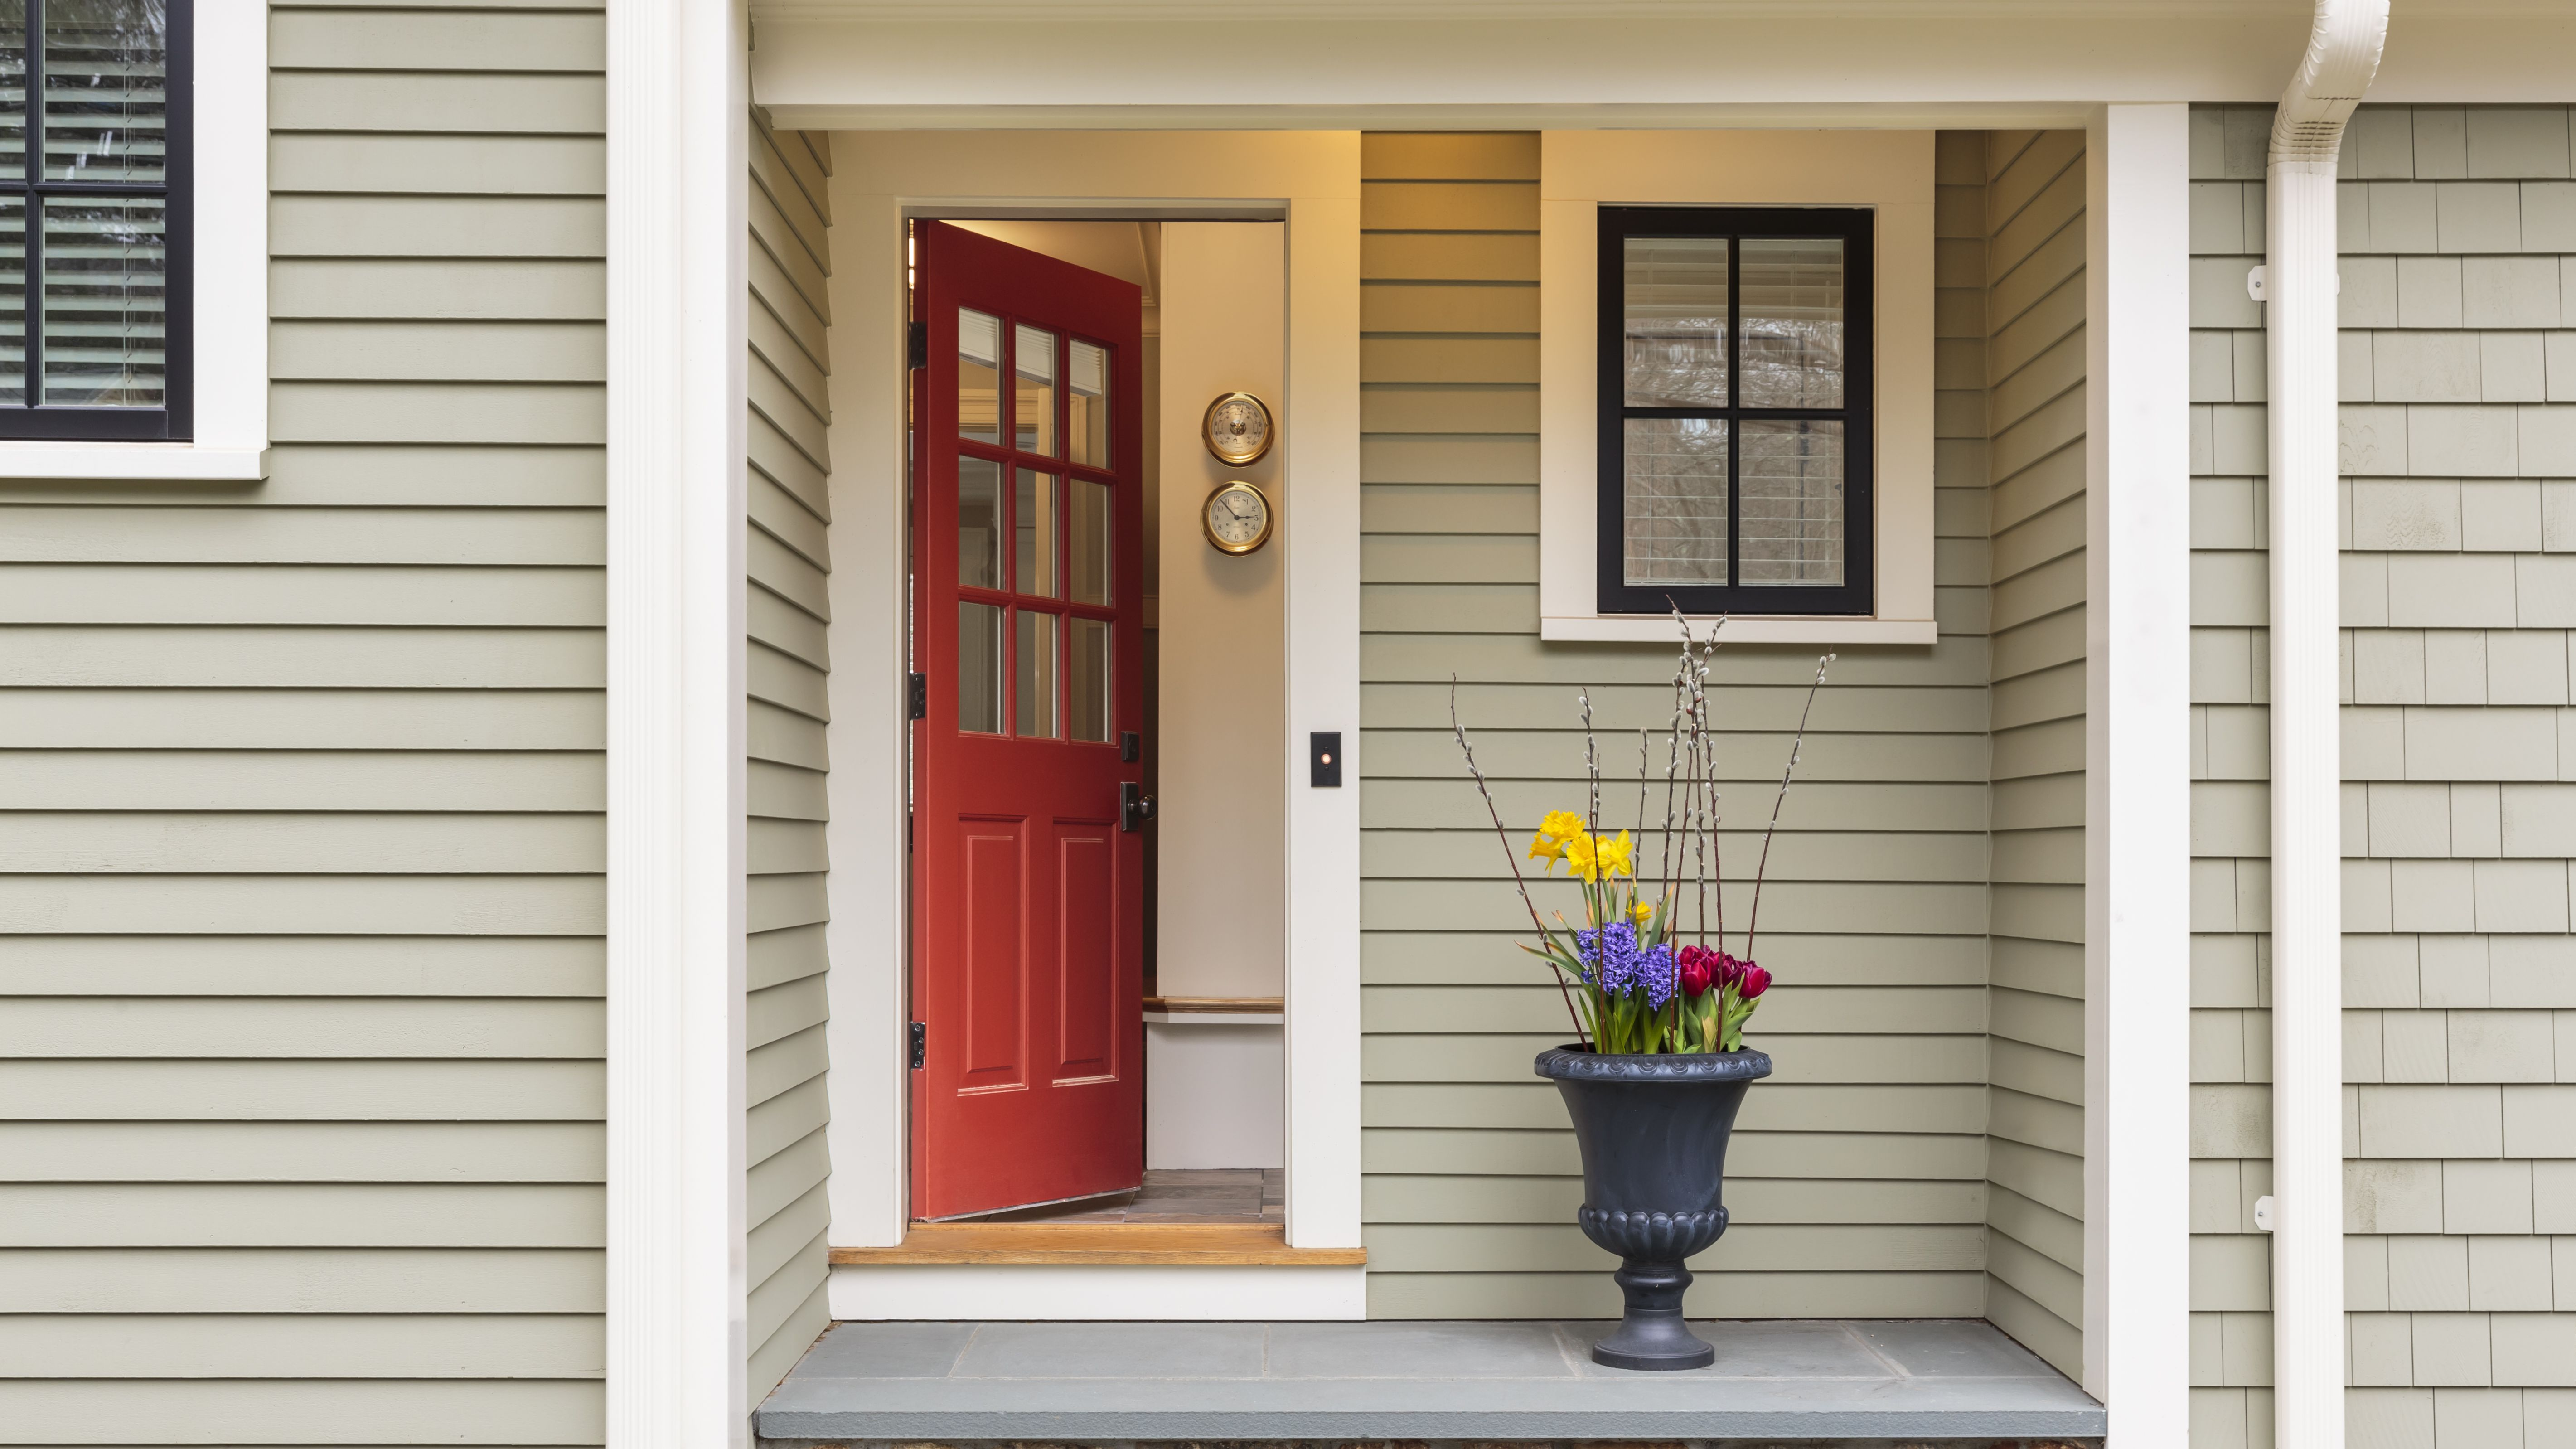 How To Replace A Window Grille In An Exterior Door